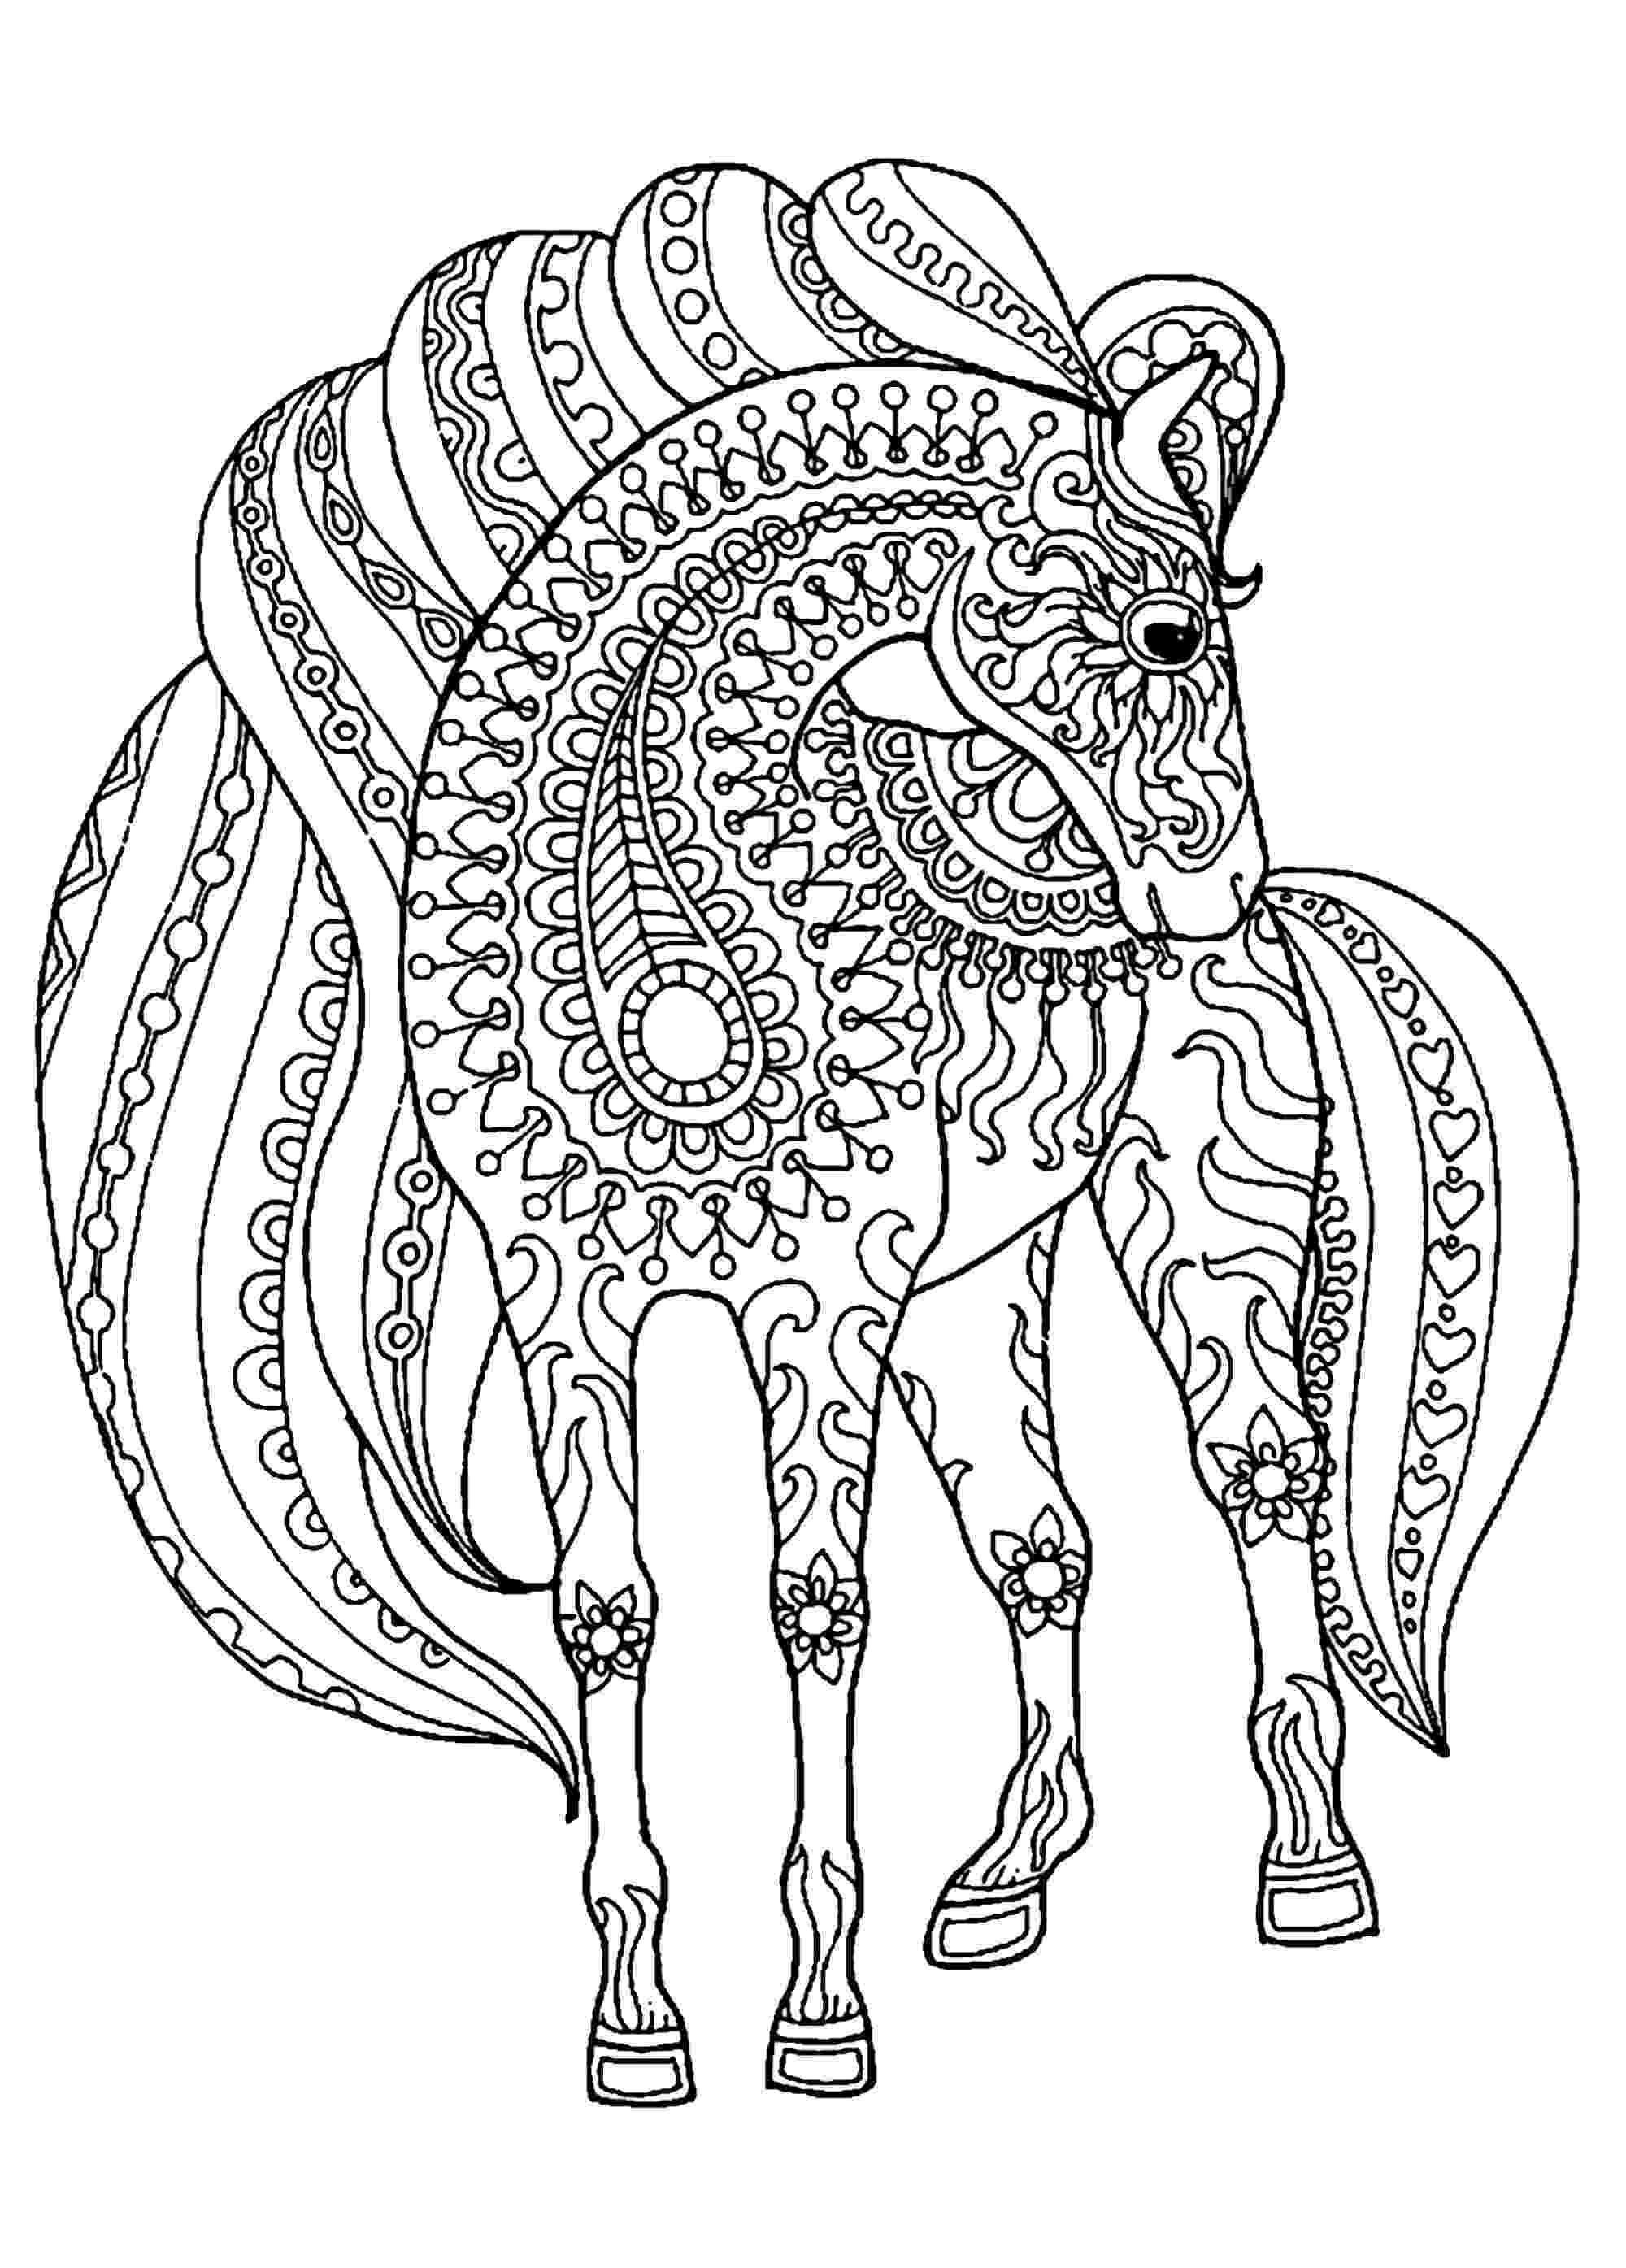 horse coloring images american saddlebred mare horse coloring page free coloring horse images